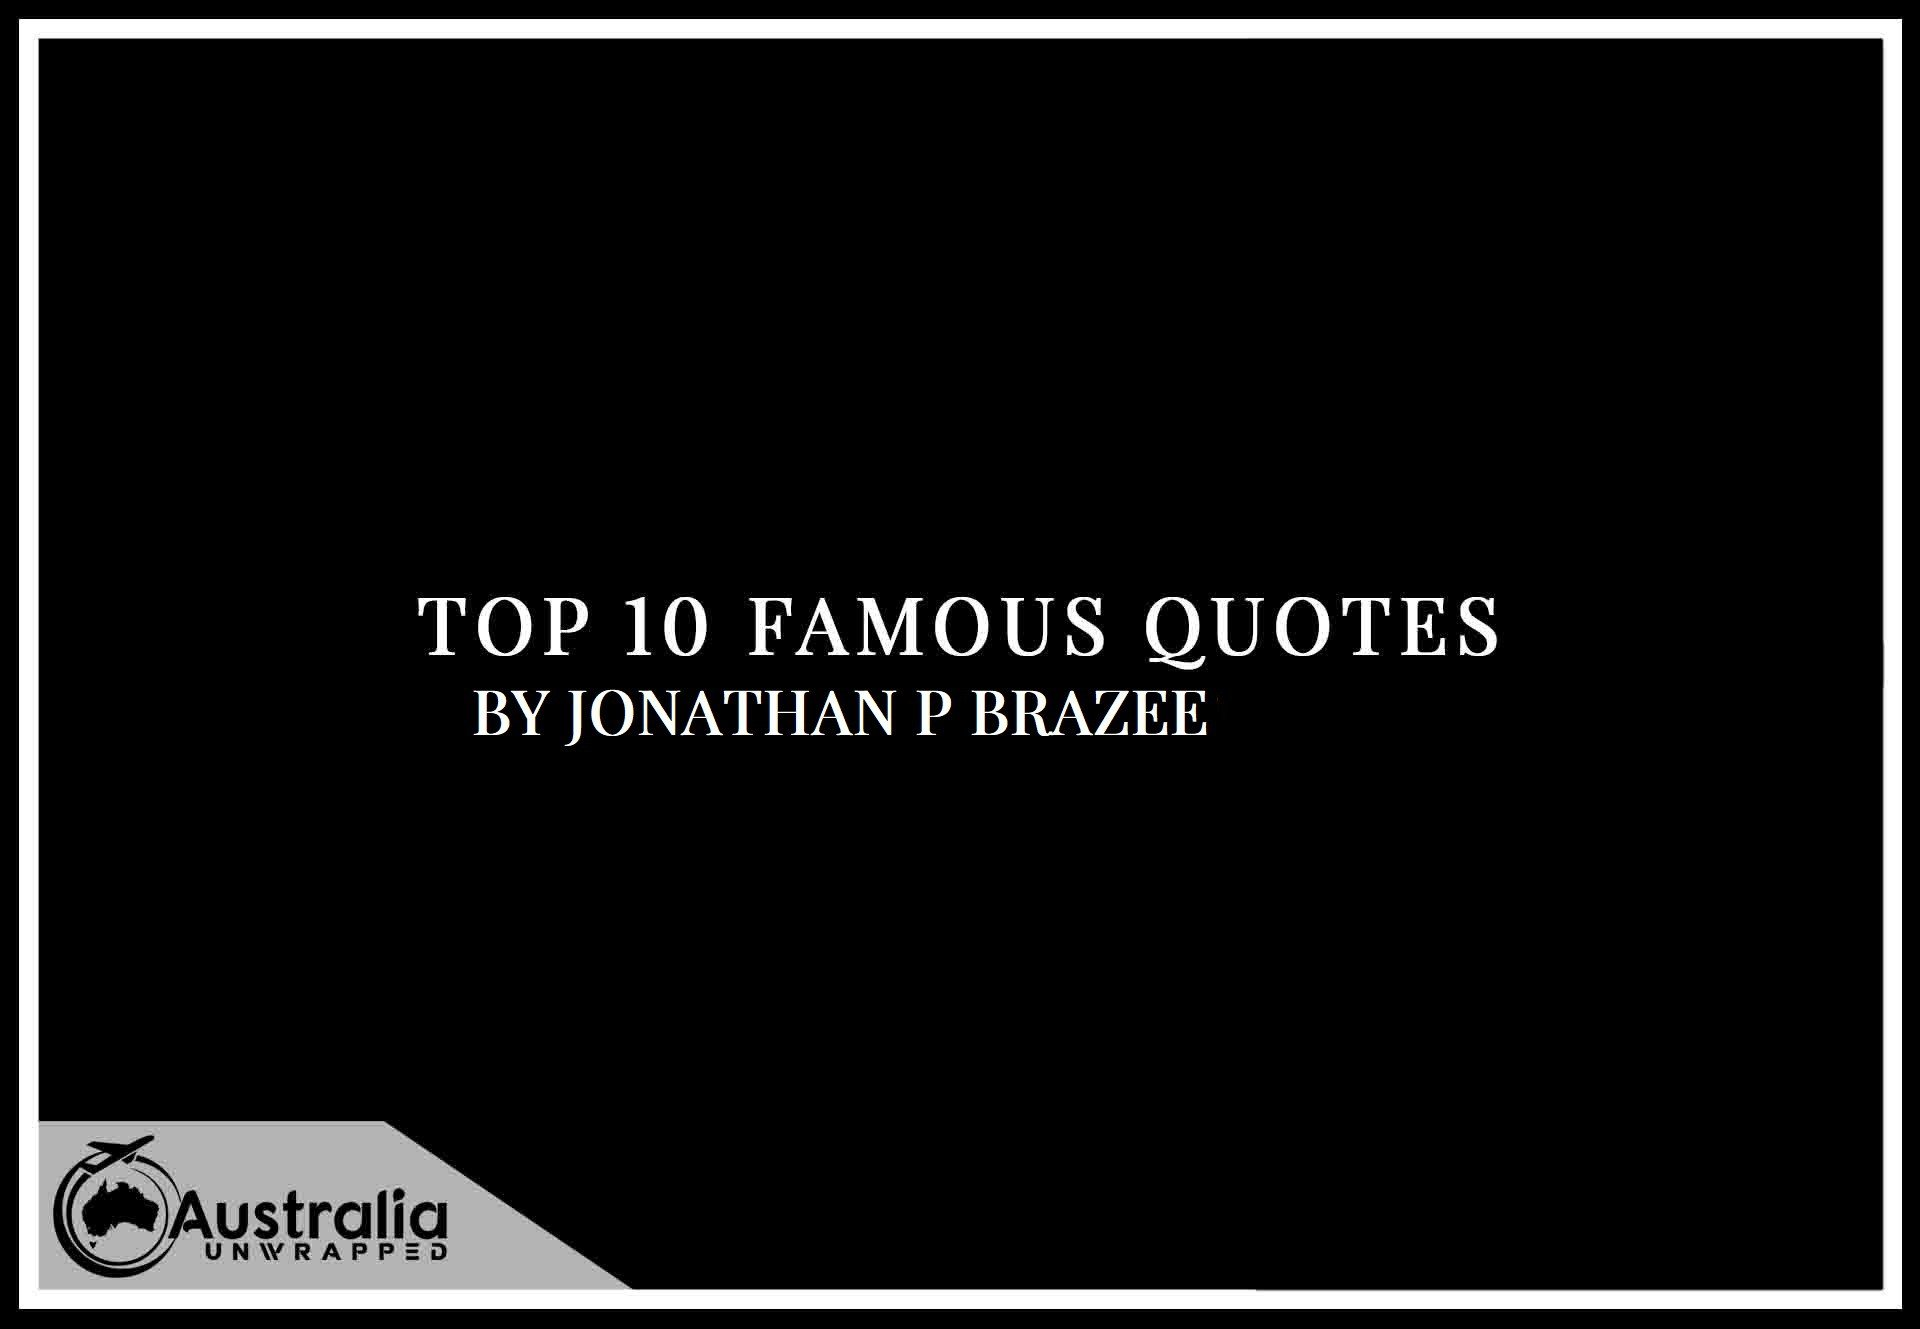 Top 10 Famous Quotes by Author Jonathan P. Brazee